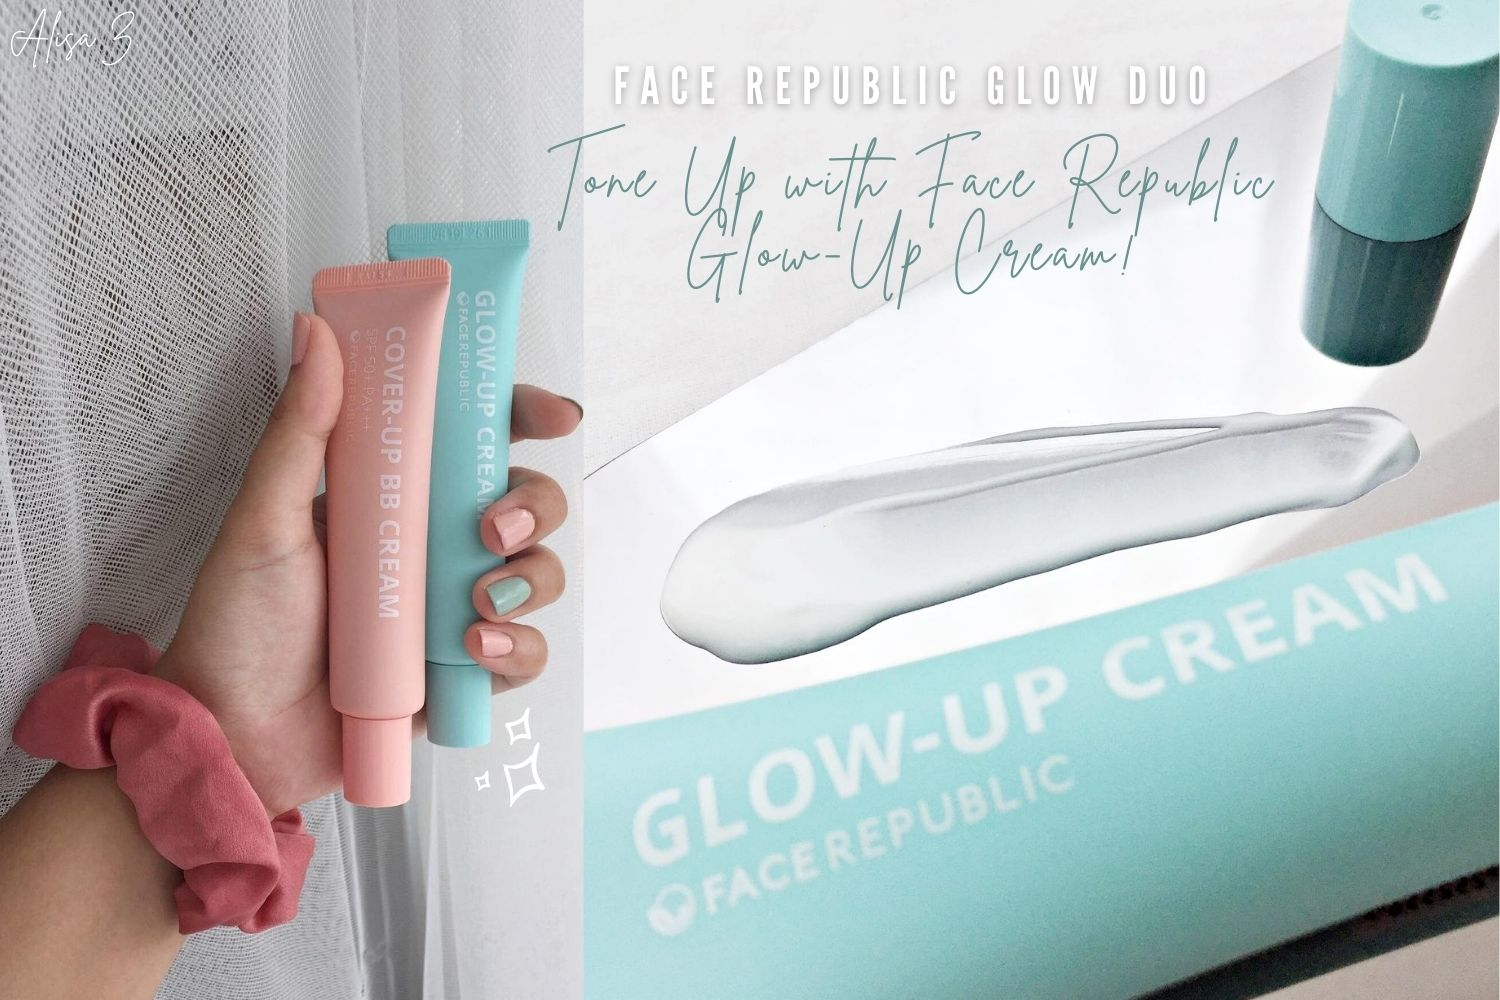 REVIEW | Tone Up with Face Republic Glow-Up Cream